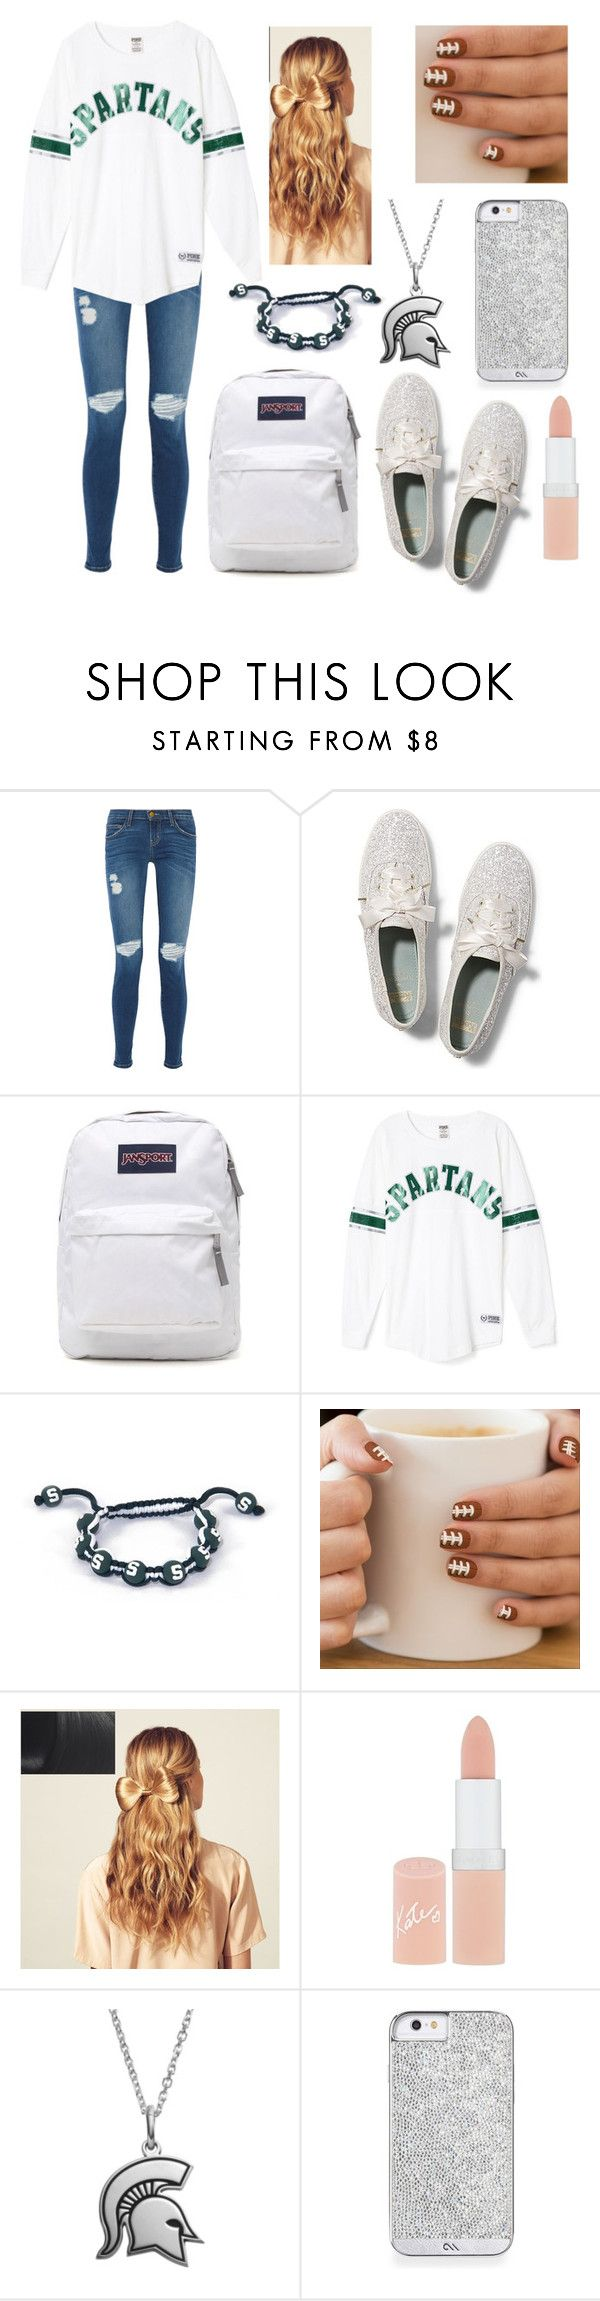 """MSU Game"" by laylaskye ❤ liked on Polyvore featuring Current/Elliott, Keds, JanSport, Hershesons, Rimmel and Fiora"